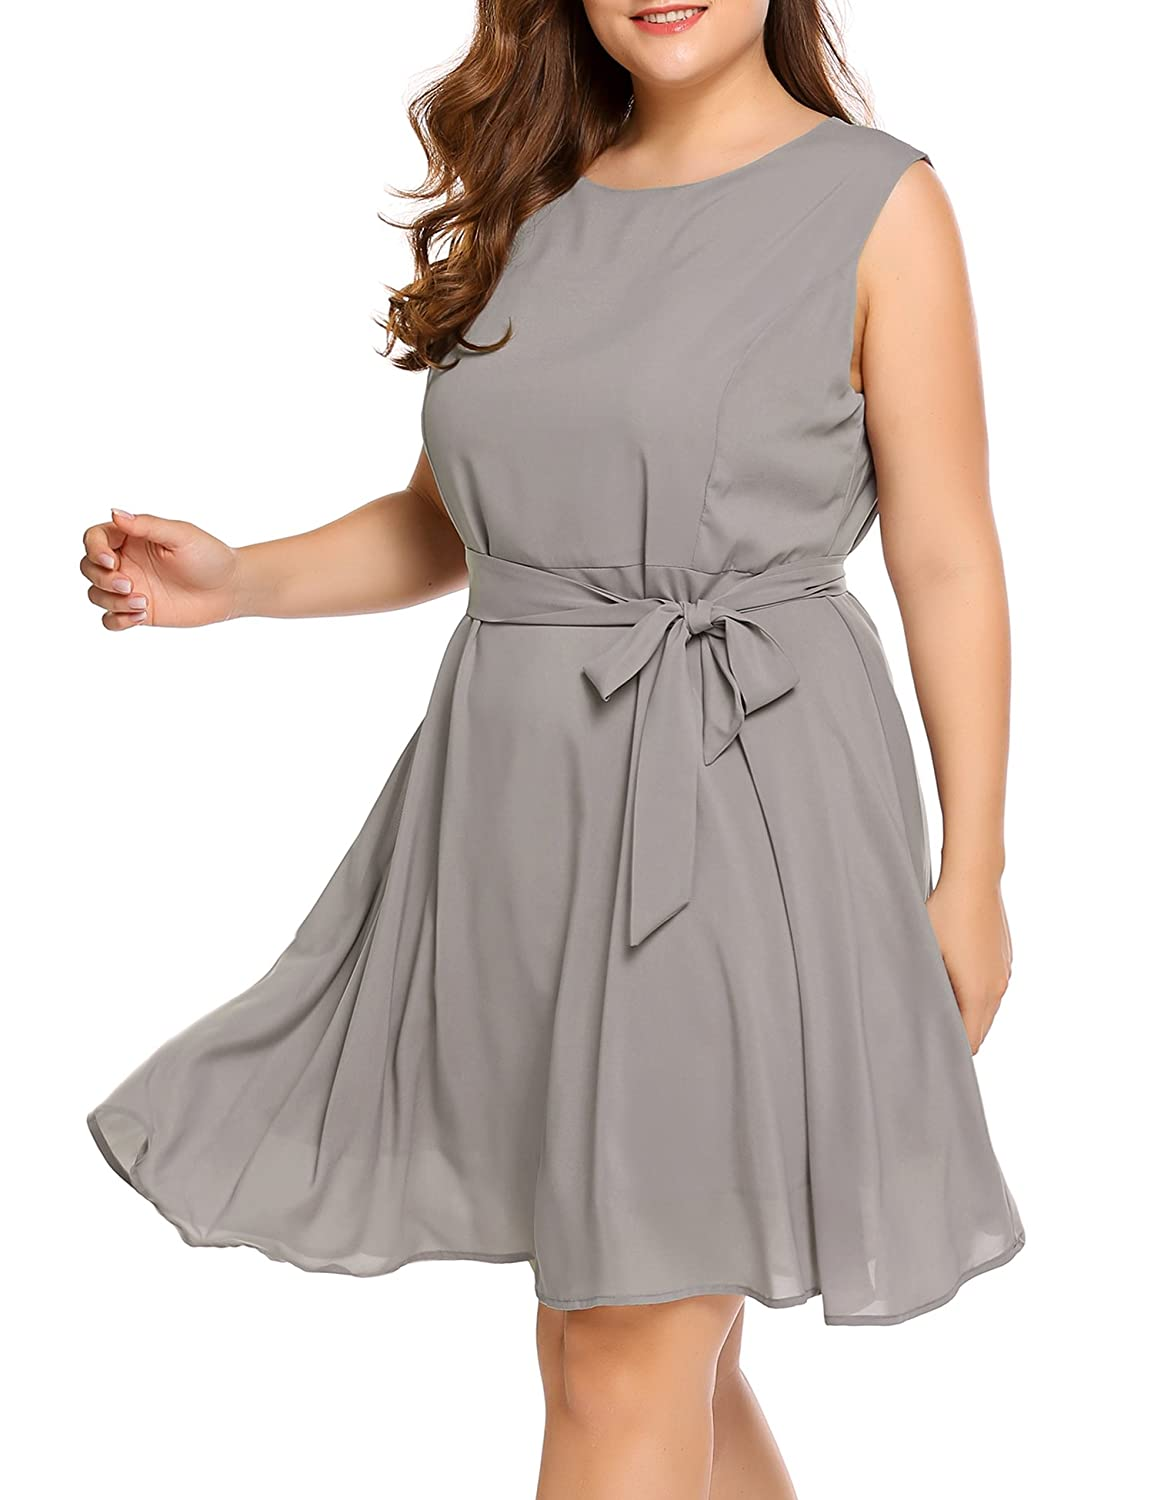 Womens Plus Size Casual Summer Midi Chiffon Dresses Party Cocktail Dress  Ladies A-Line Sleeveless Round Neck Sundress with Belt Grey at Amazon  Women s ... b26919e28